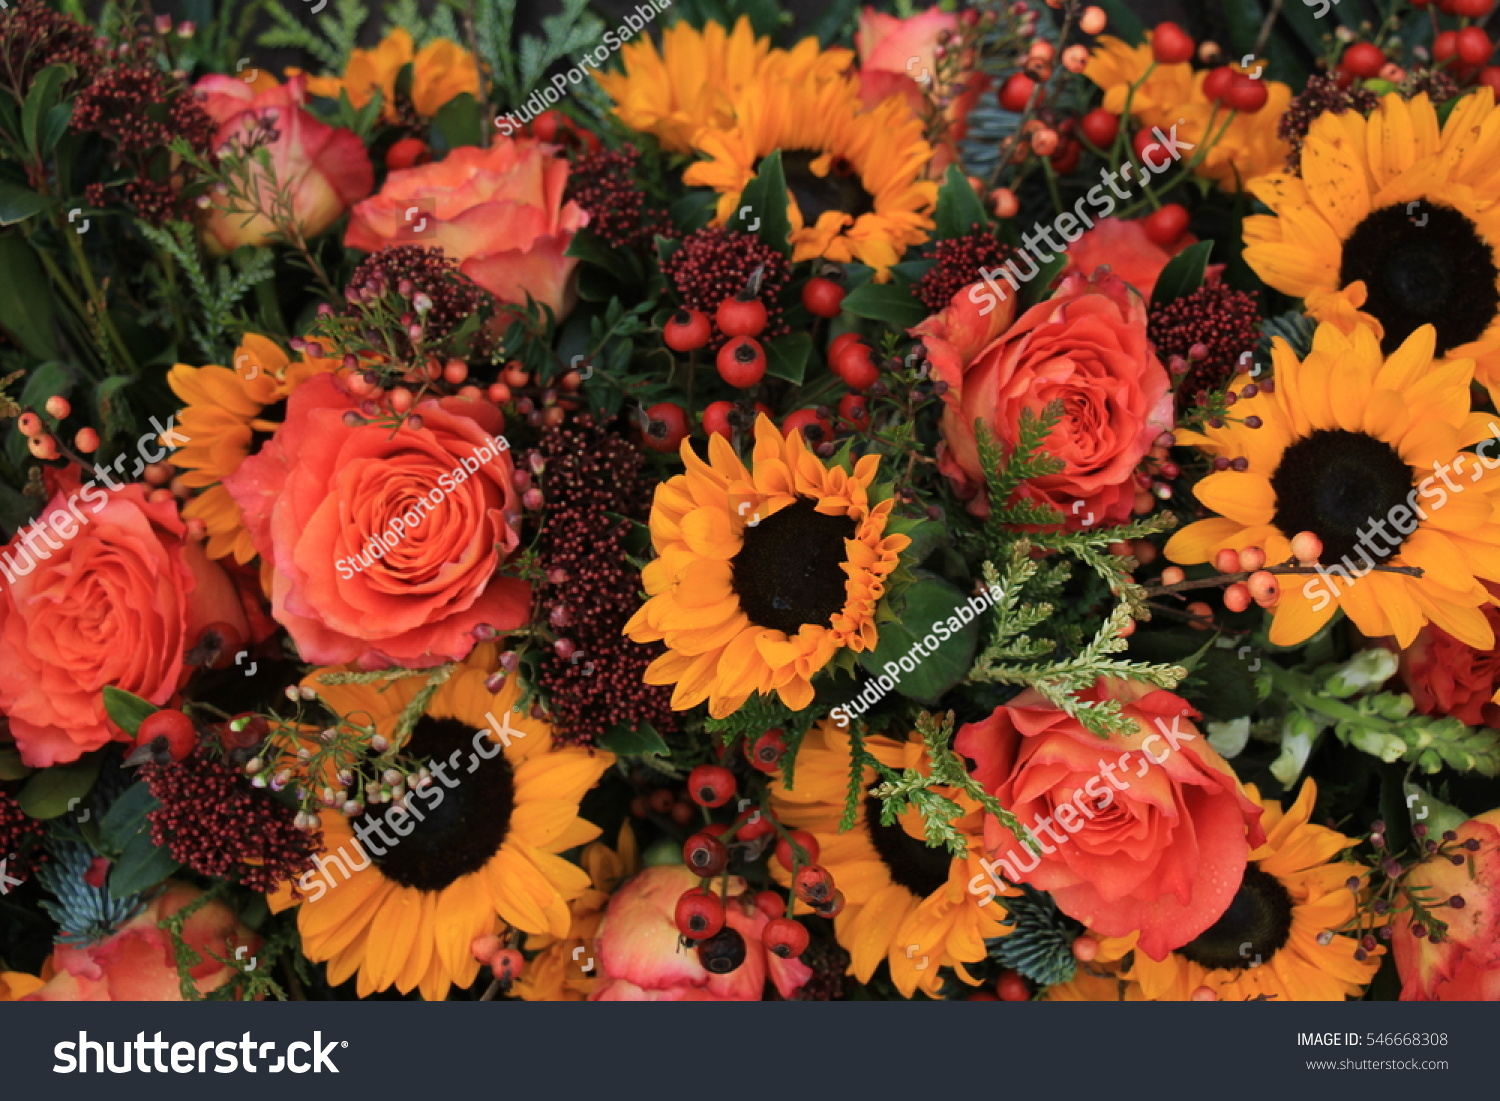 Big Yellow Sunflowers Orange Roses Floral Stock Photo Edit Now